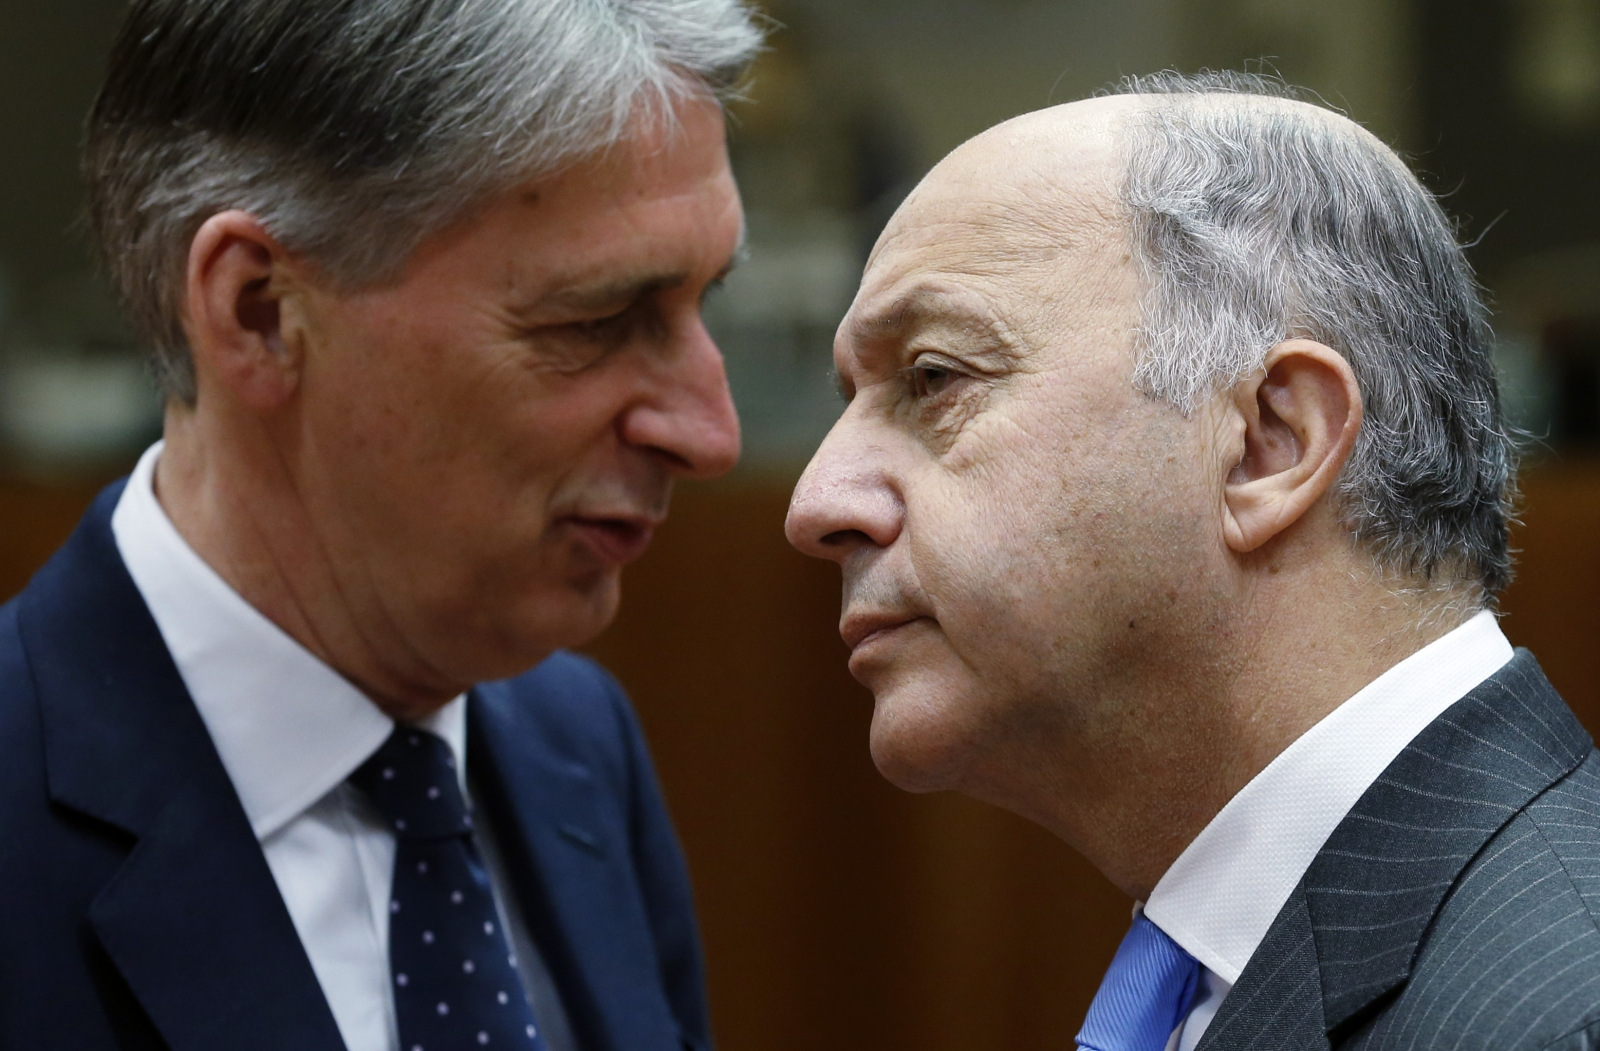 Philip Hammond Laurent Fabius